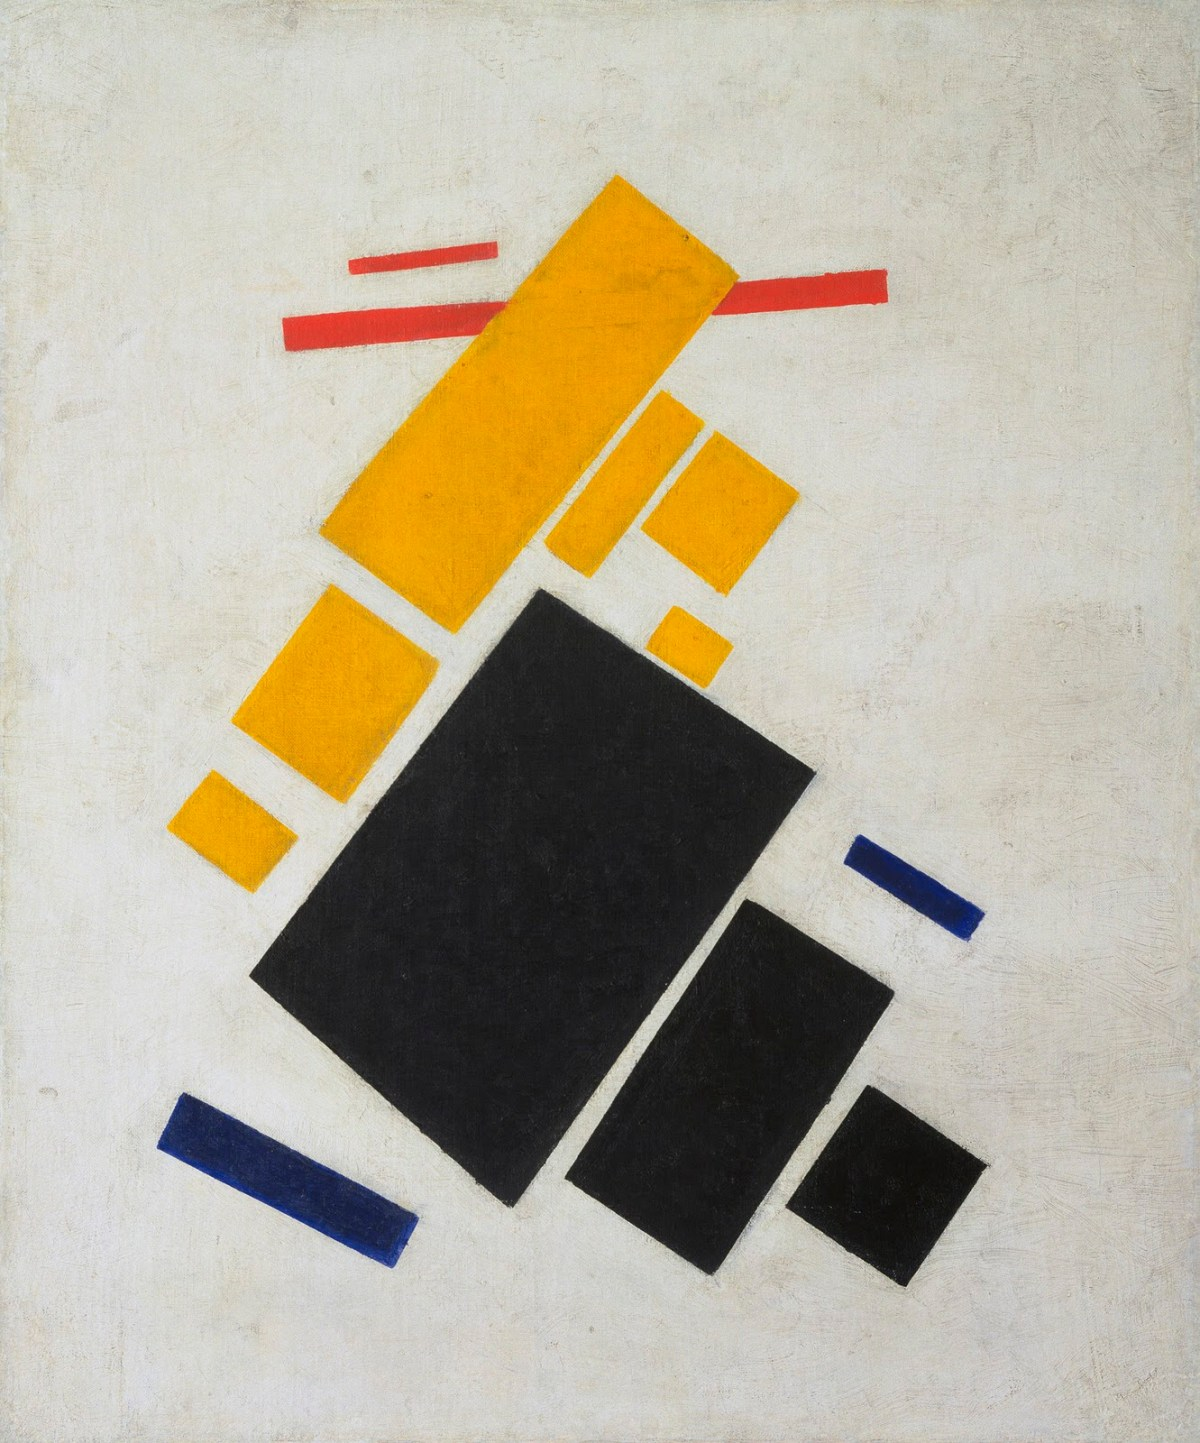 Suprematist Composition Airplane Flying by Kazimir Malevich